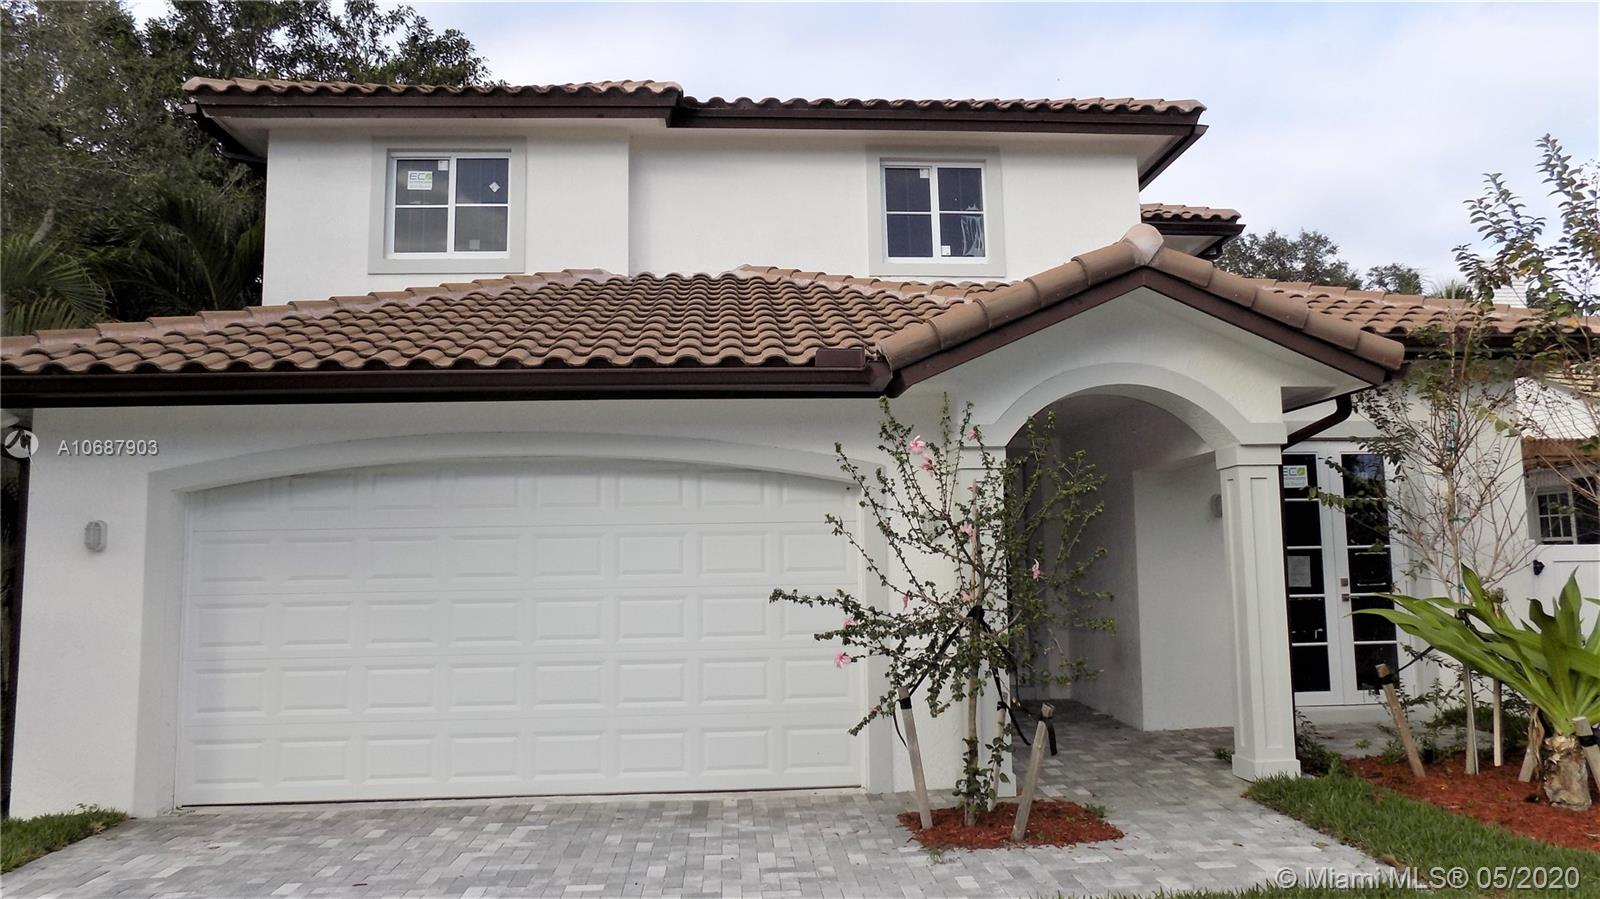 AMAZING 2-STORY CUSTOM BUILT HOME WITH THE POOL!! LOCATED in one of the BEST neighborhoods in Fort Lauderdale** NEWLY BUILT WITH 5BED/5BATH**4,569 SQFT-Total Main Residence**TRANSITIONAL-MODERN architecture outside and MODERN finishes inside**EXCELLENT combination of Porcelain tile and wide plank wood flooring**All Rooms are LARGE**MASTER has a big patio overlooking the pool area**CONTEMPORARY finishes include EURO STYLE cabinetry w/quartz counters*** This HOUSE is a MUST SEE!**DO NOT MISS YOUR CHANCE TO OWN NEWLY BUILT HOME IN RIO VISTA AREA!!** SEE BROKER REMARKS**